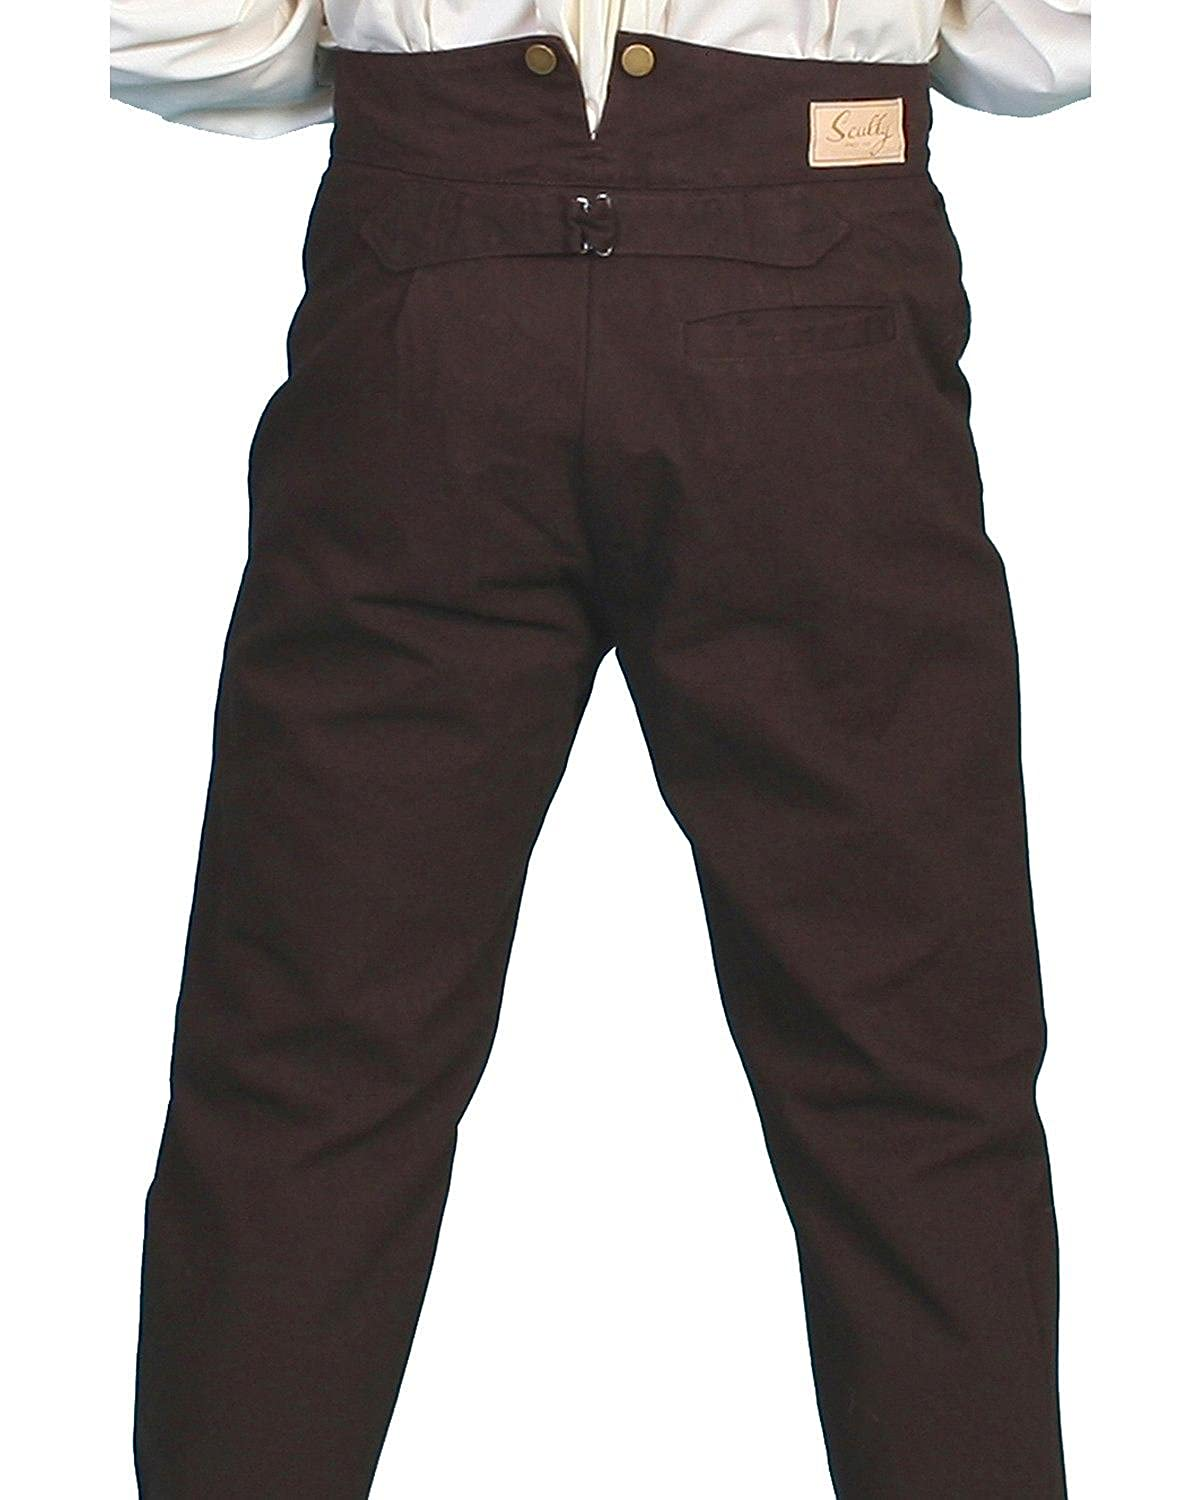 Men's Steampunk Clothing, Costumes, Fashion Scully Rangewear Mens Rangewear Canvas Pants $51.90 AT vintagedancer.com